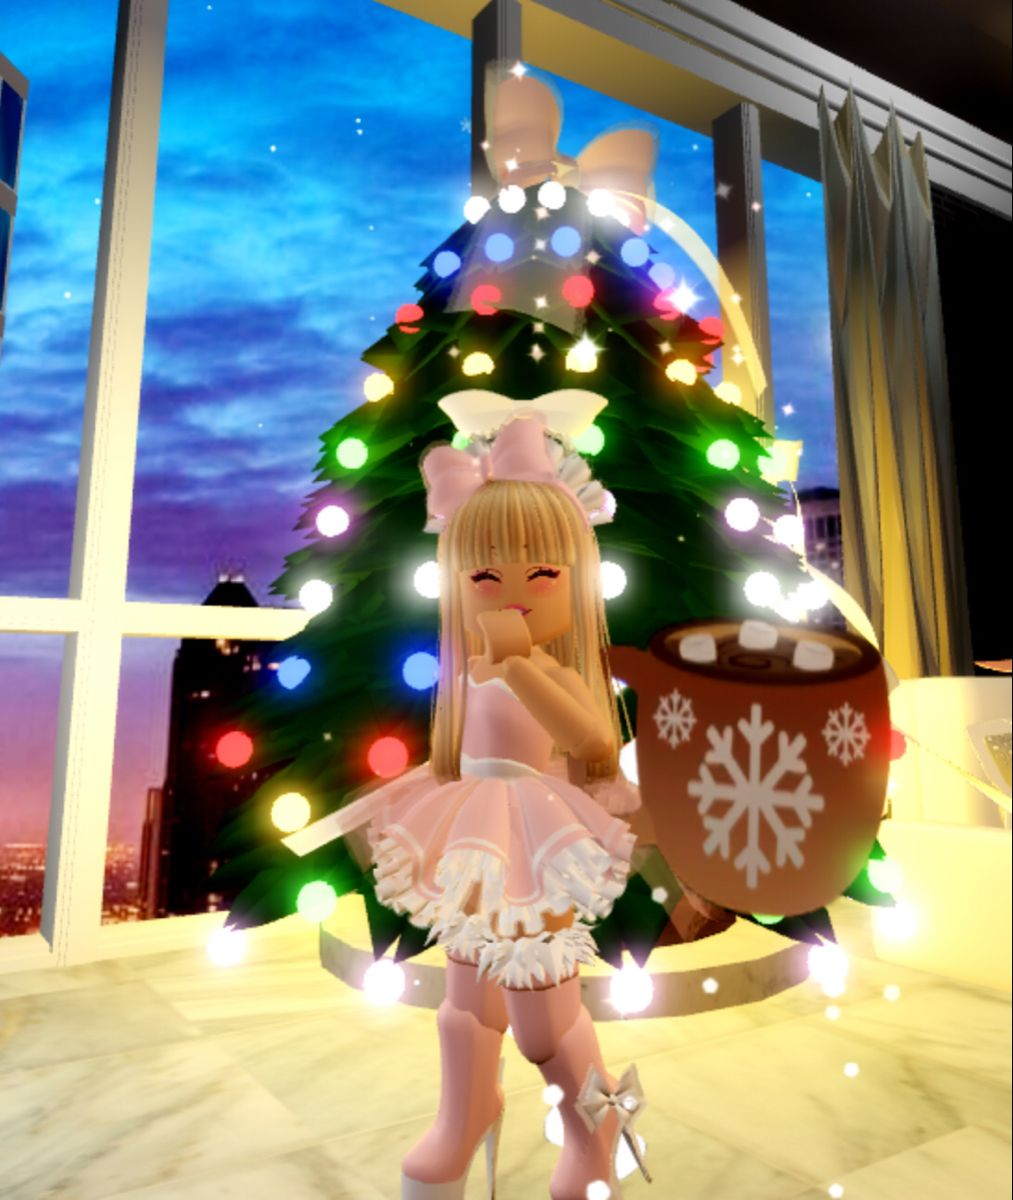 Hot Coco Outfit Cute Tumblr Wallpaper Cute Profile Pictures Roblox Pictures